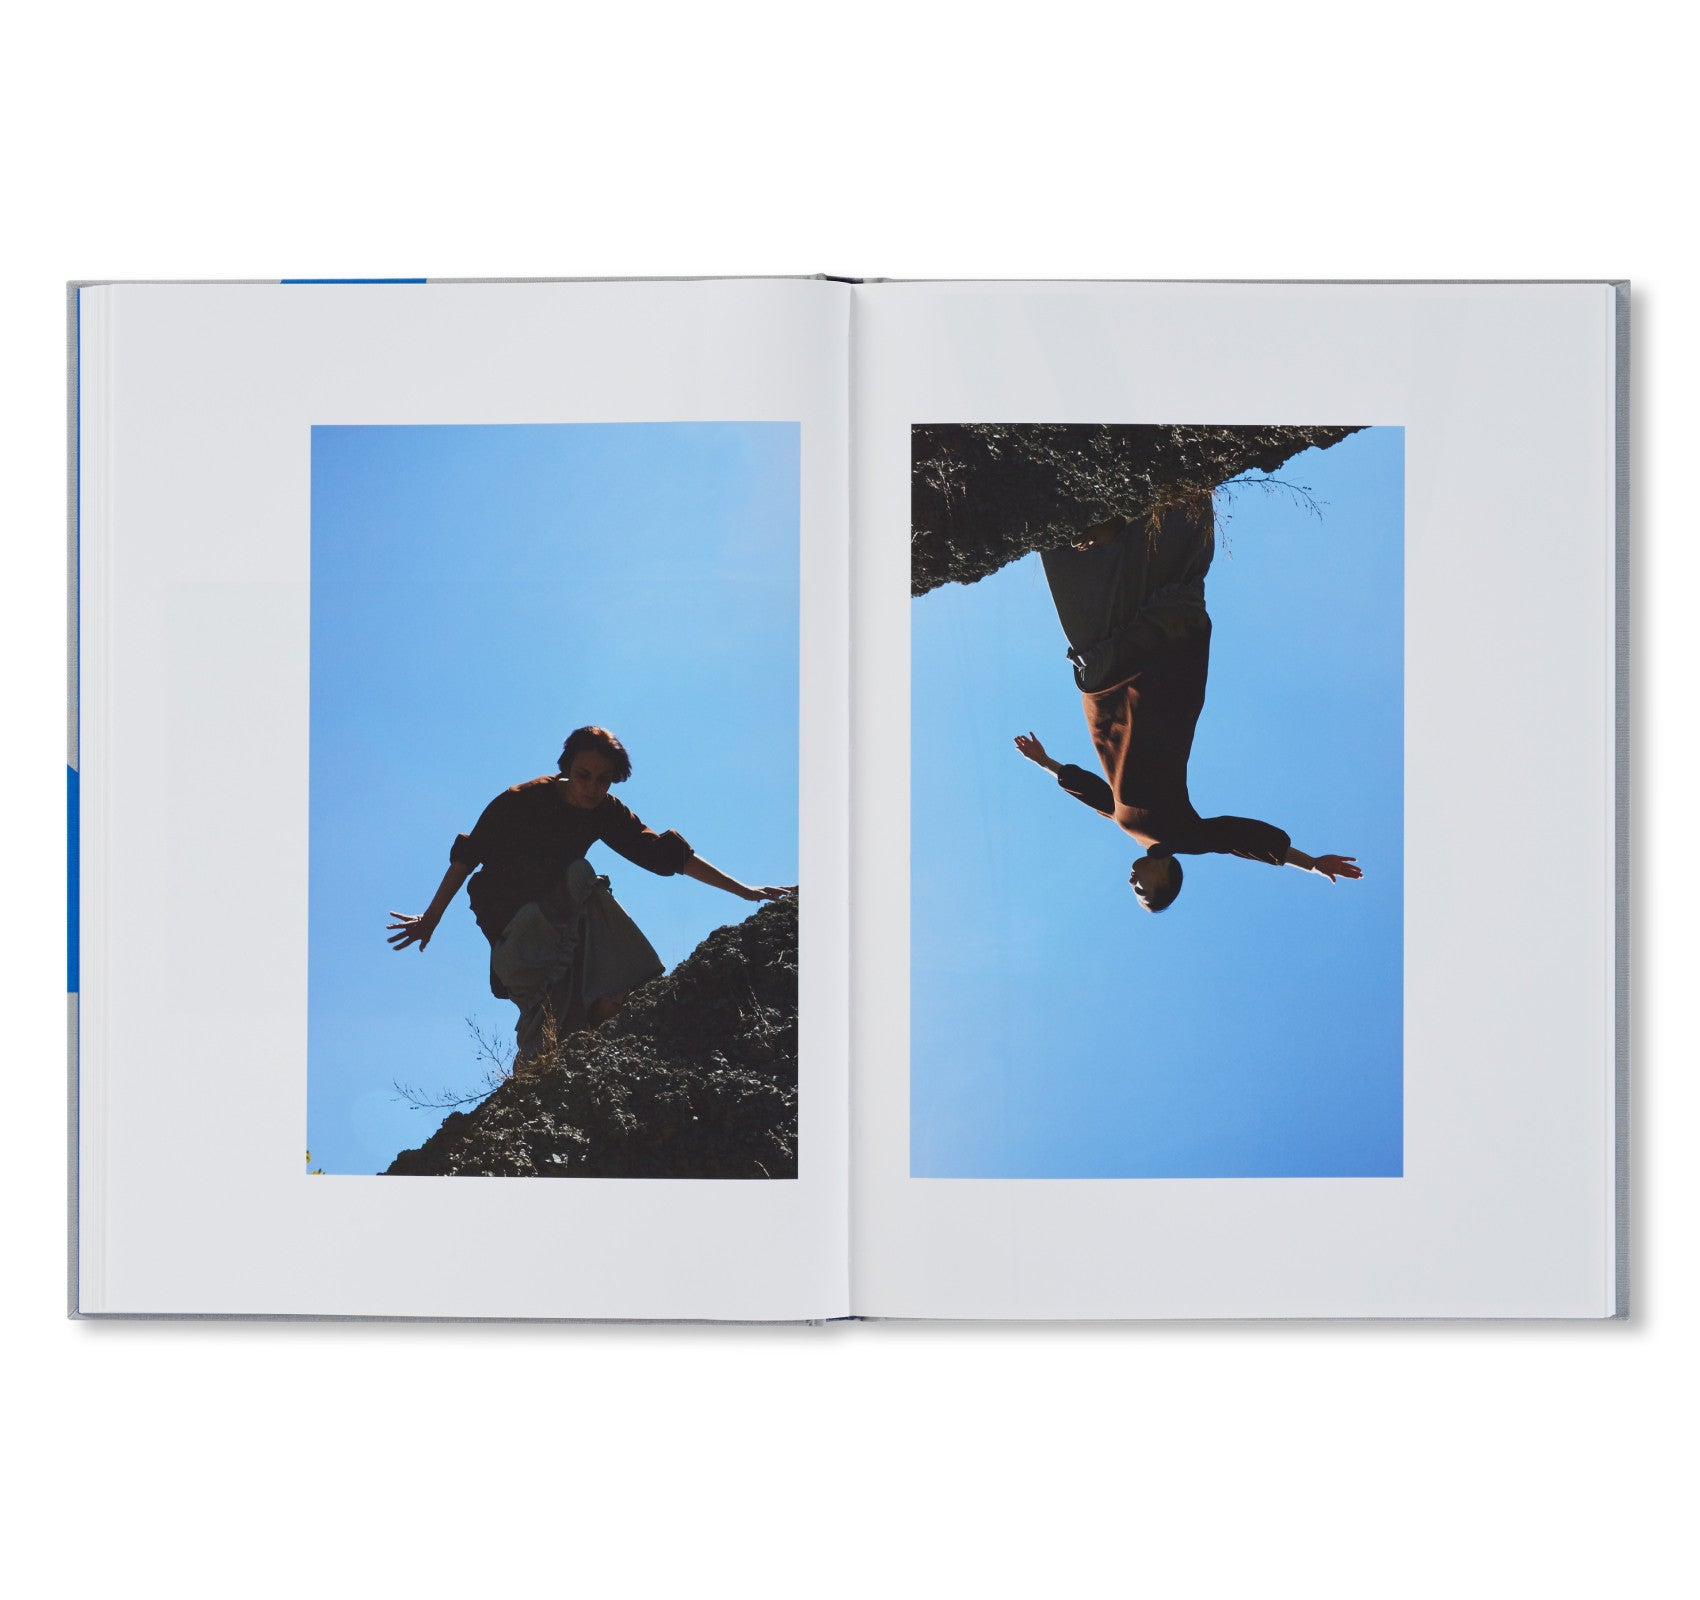 ROXANE II by Viviane Sassen [SECOND EDITION]